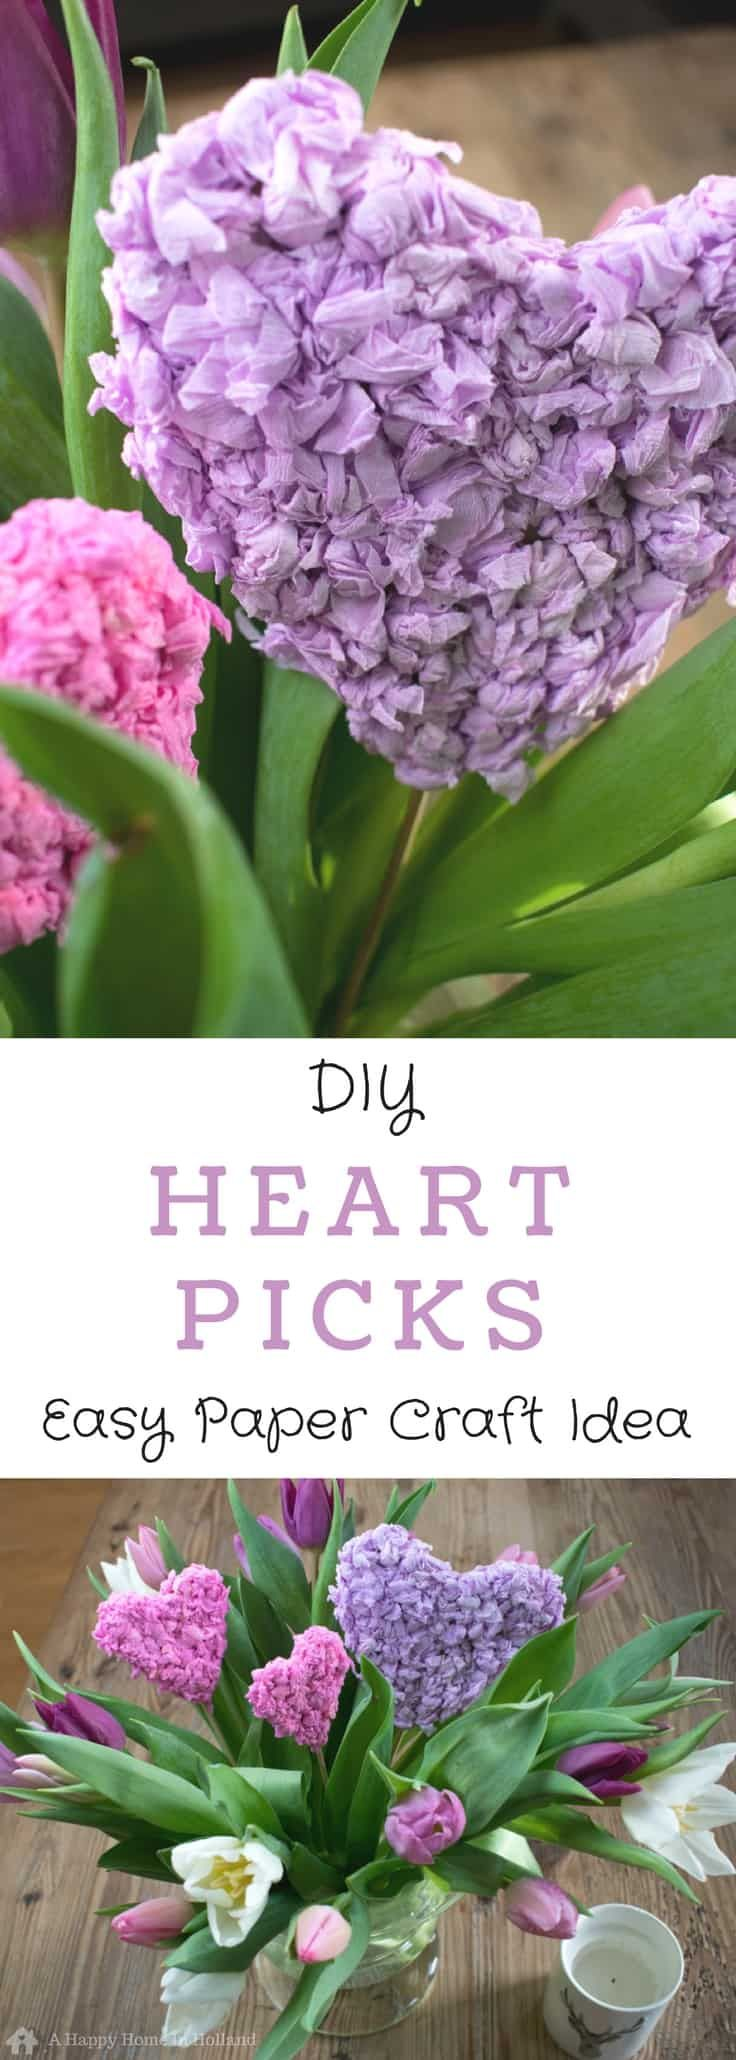 diy heart picks - a quick and easy paper craft idea to use to decorate your home and gifts - great for valentine's day and mother's day!